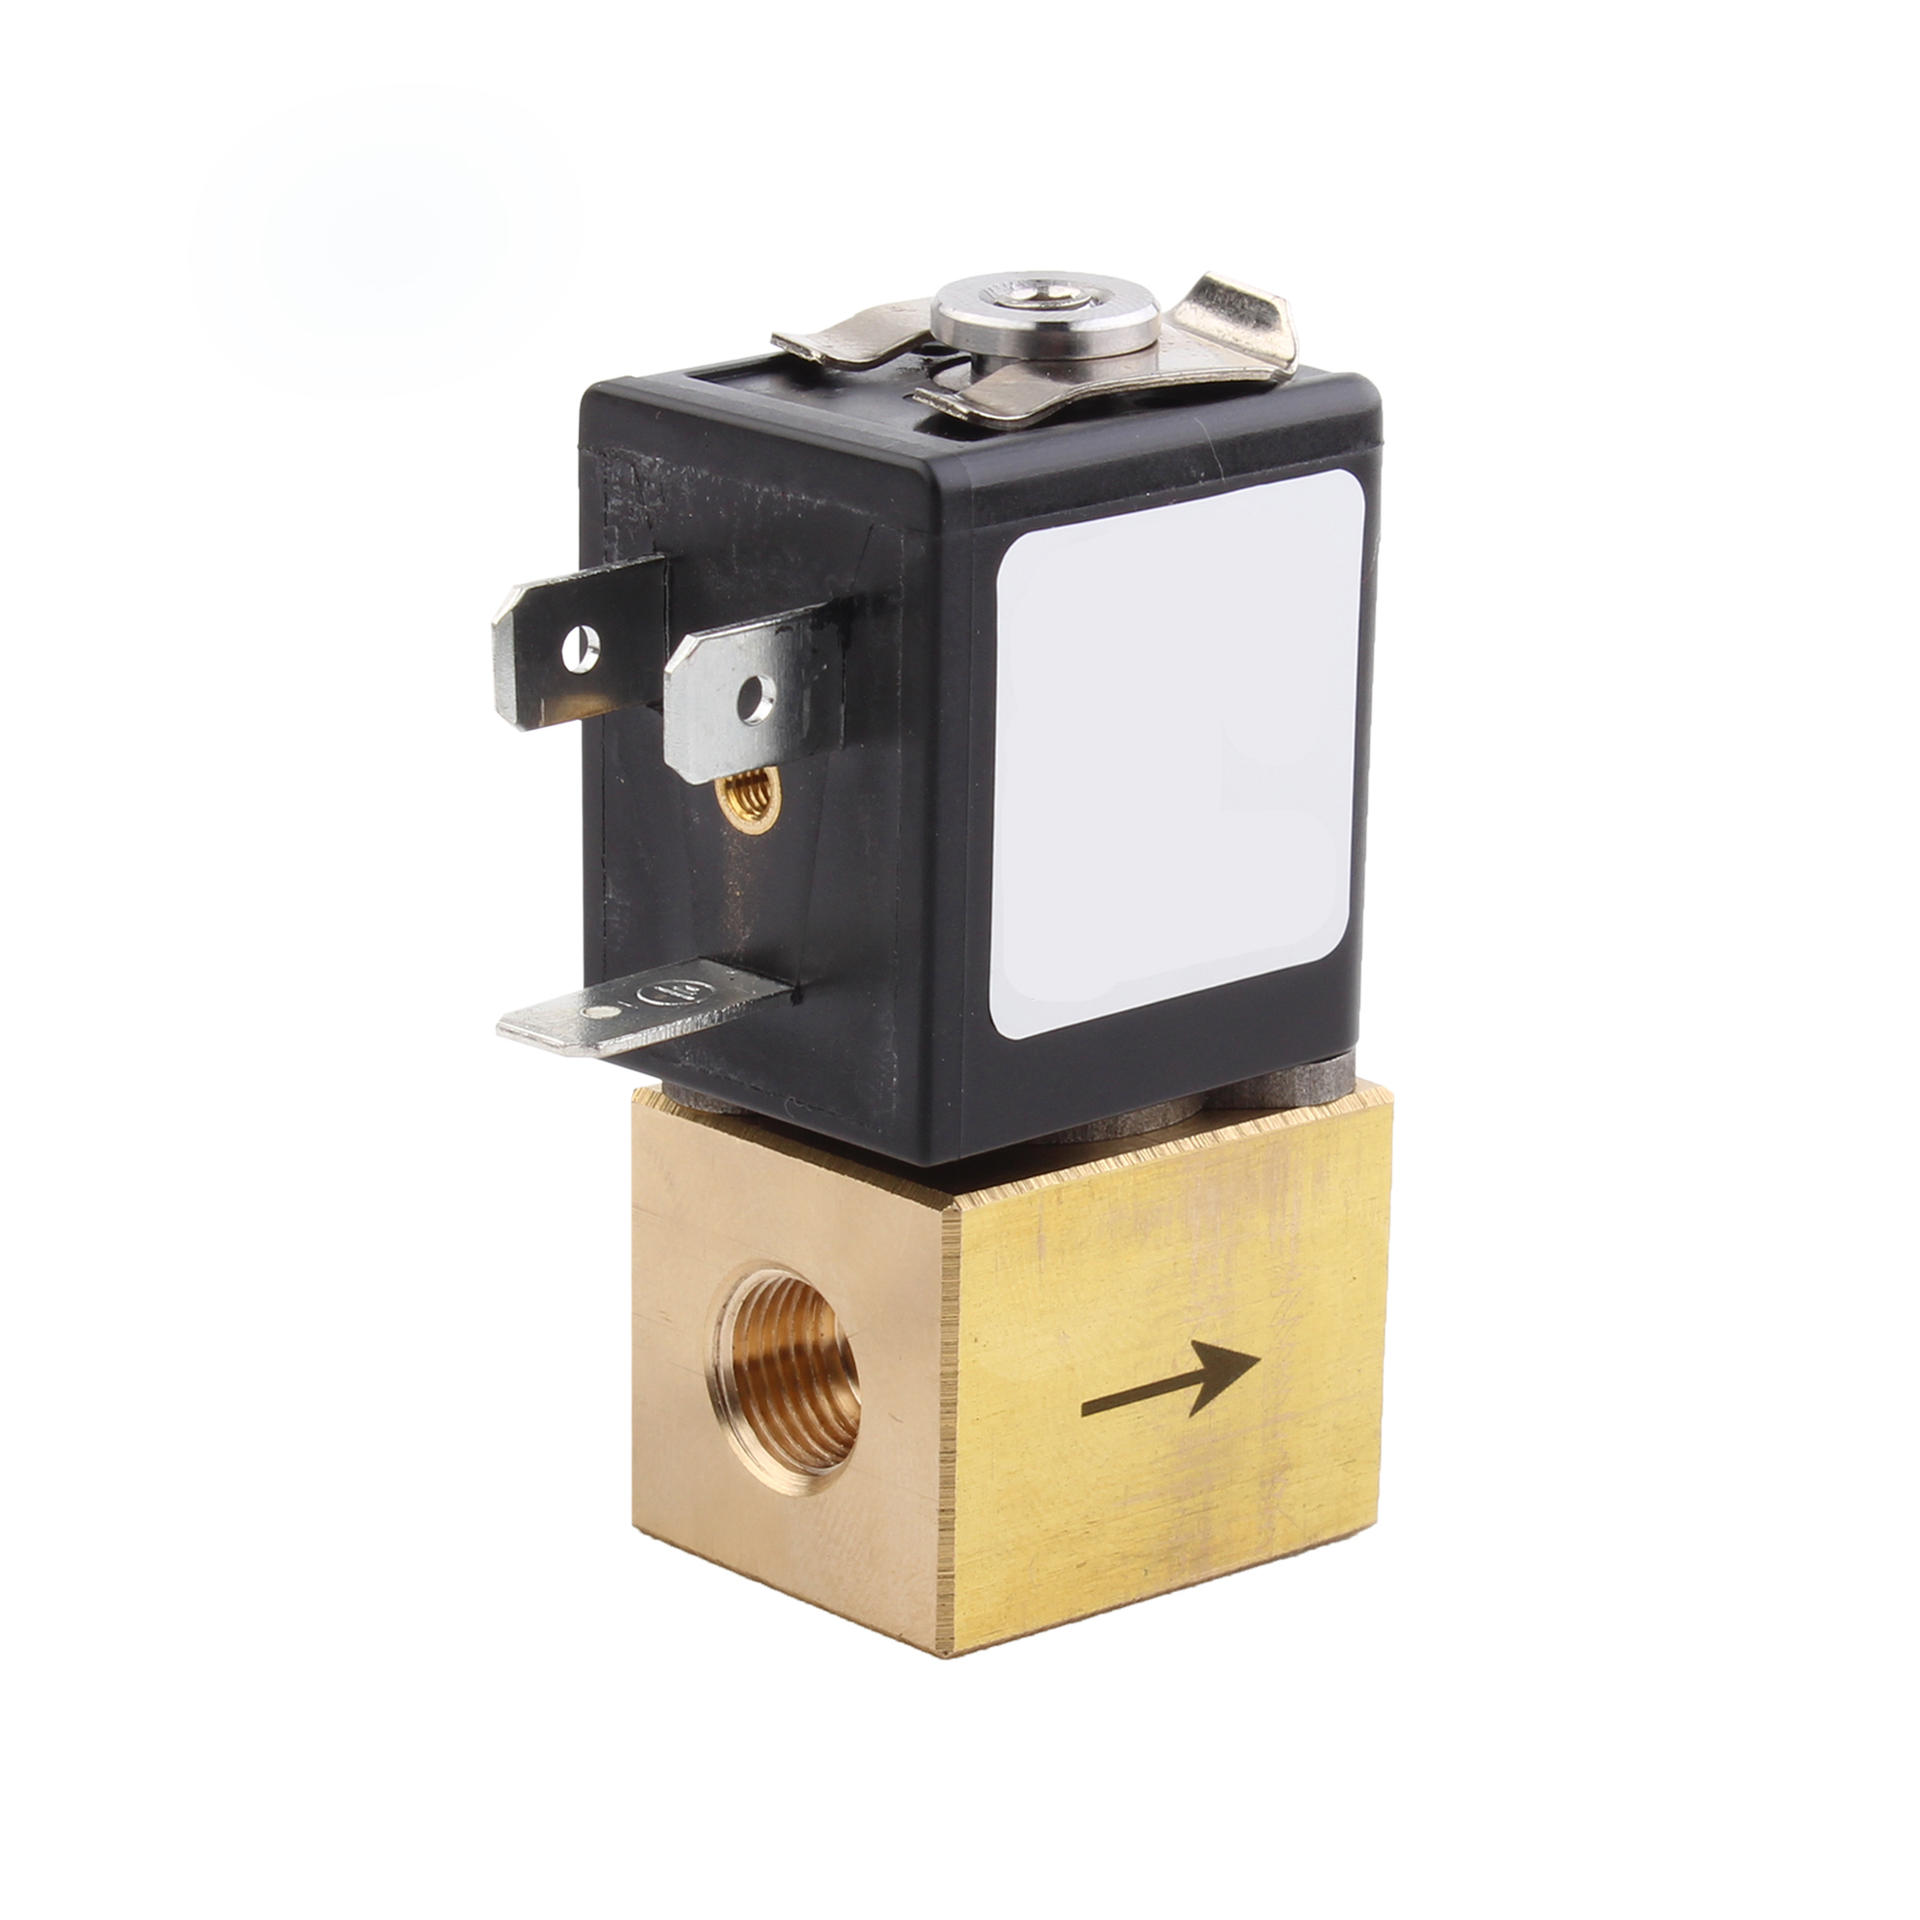 Brass Miniature Proportional Control Air Solenoid Valve 12v High Flow For Ventilator Use